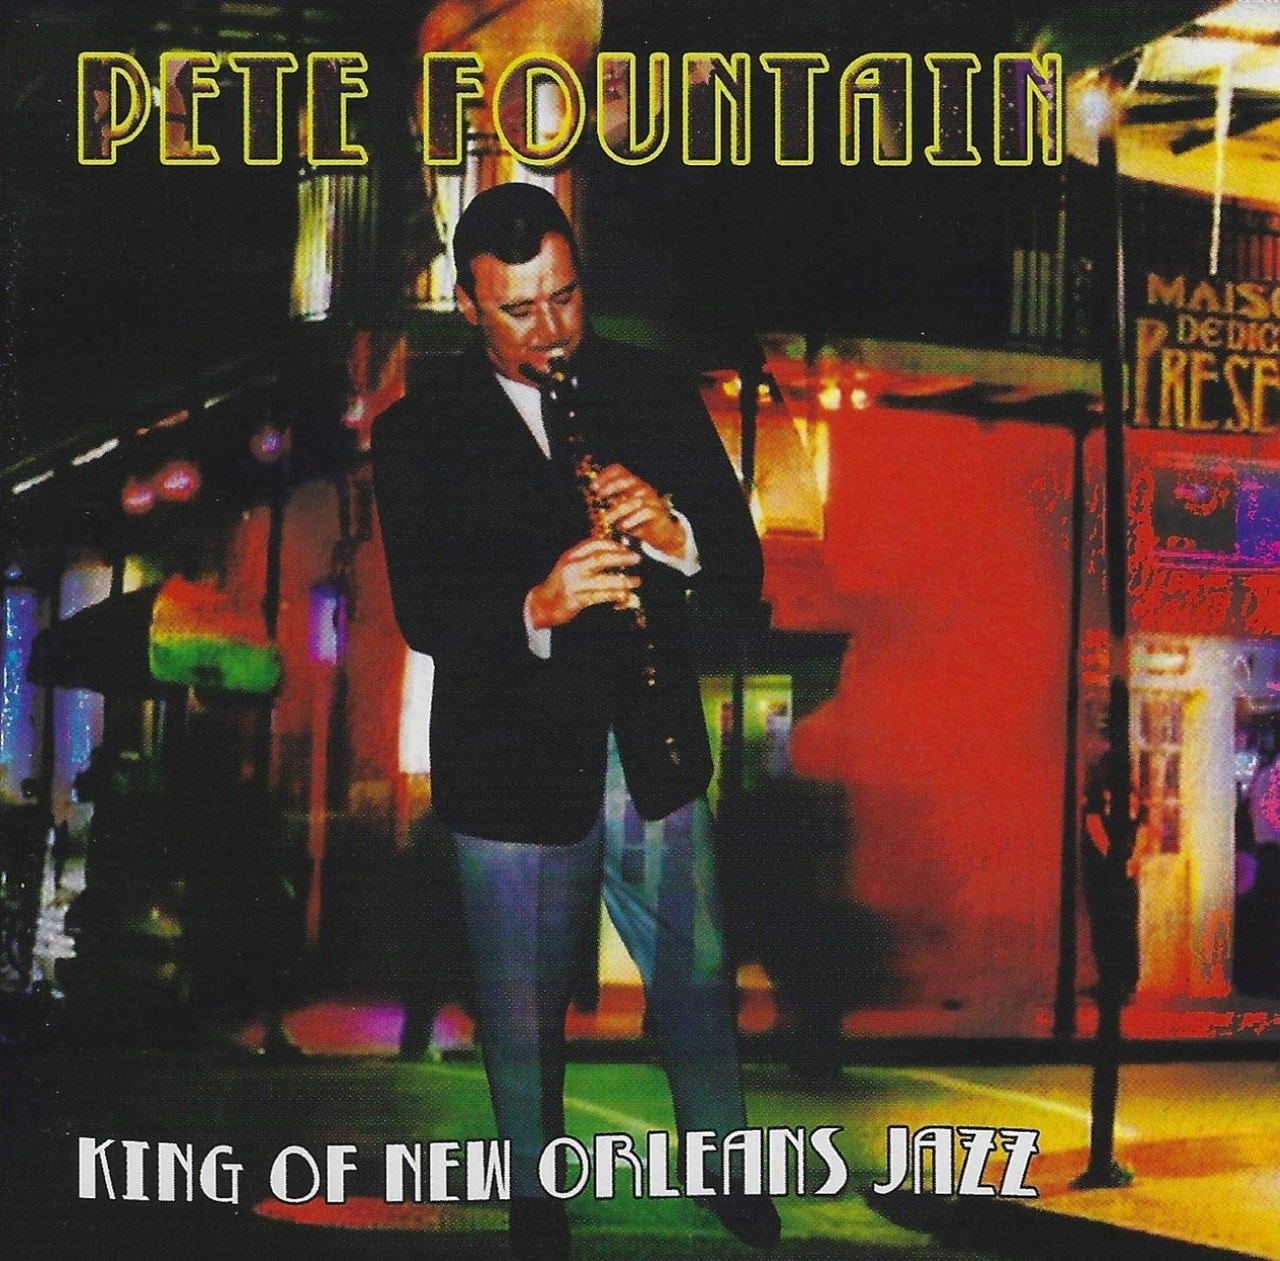 King of New Orleans Jazz - 1